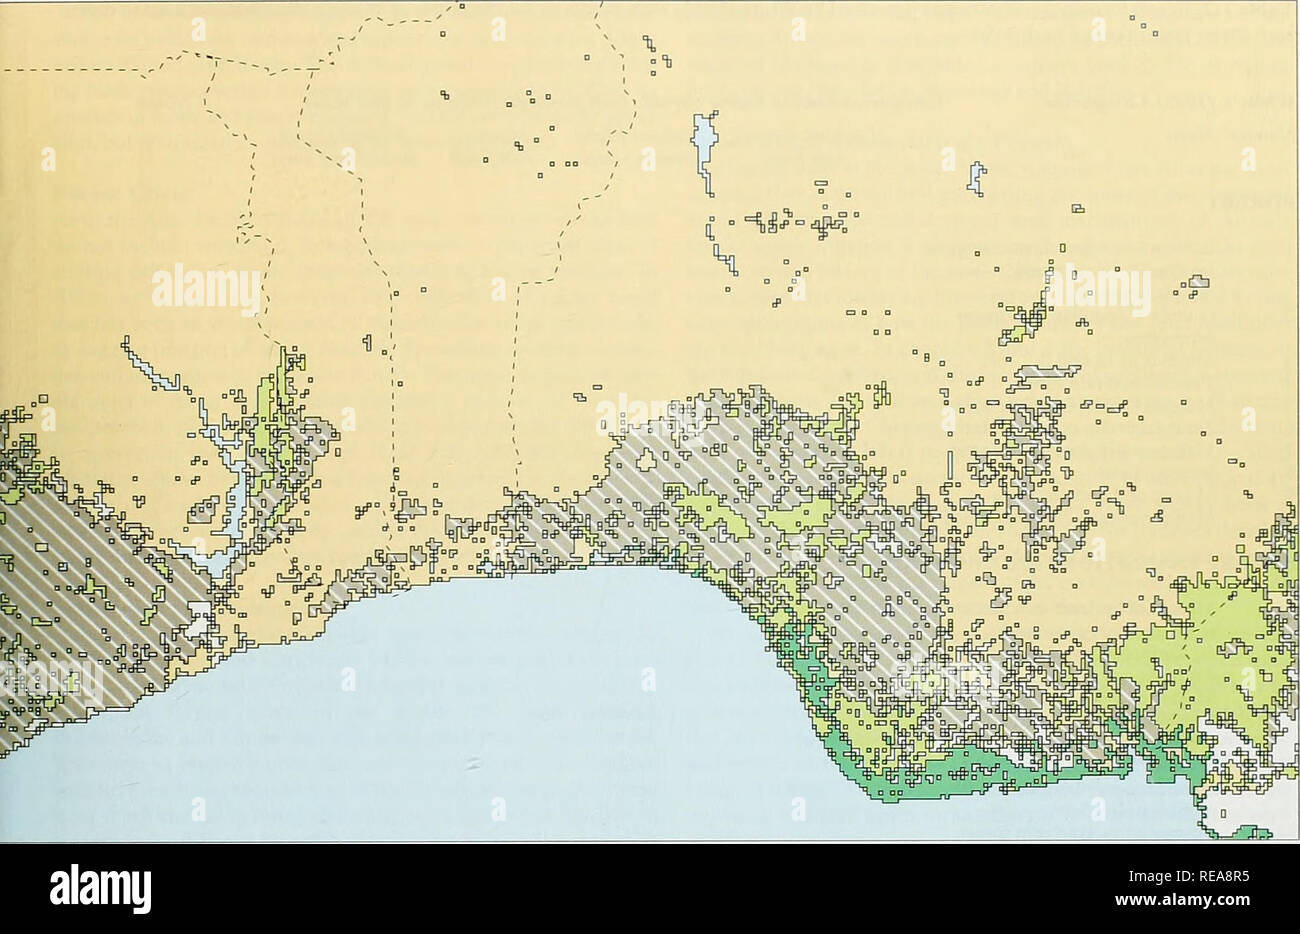 Tropical Rainforest In Africa Map.The Conservation Atlas Of Tropical Forests Africa Introduction Of